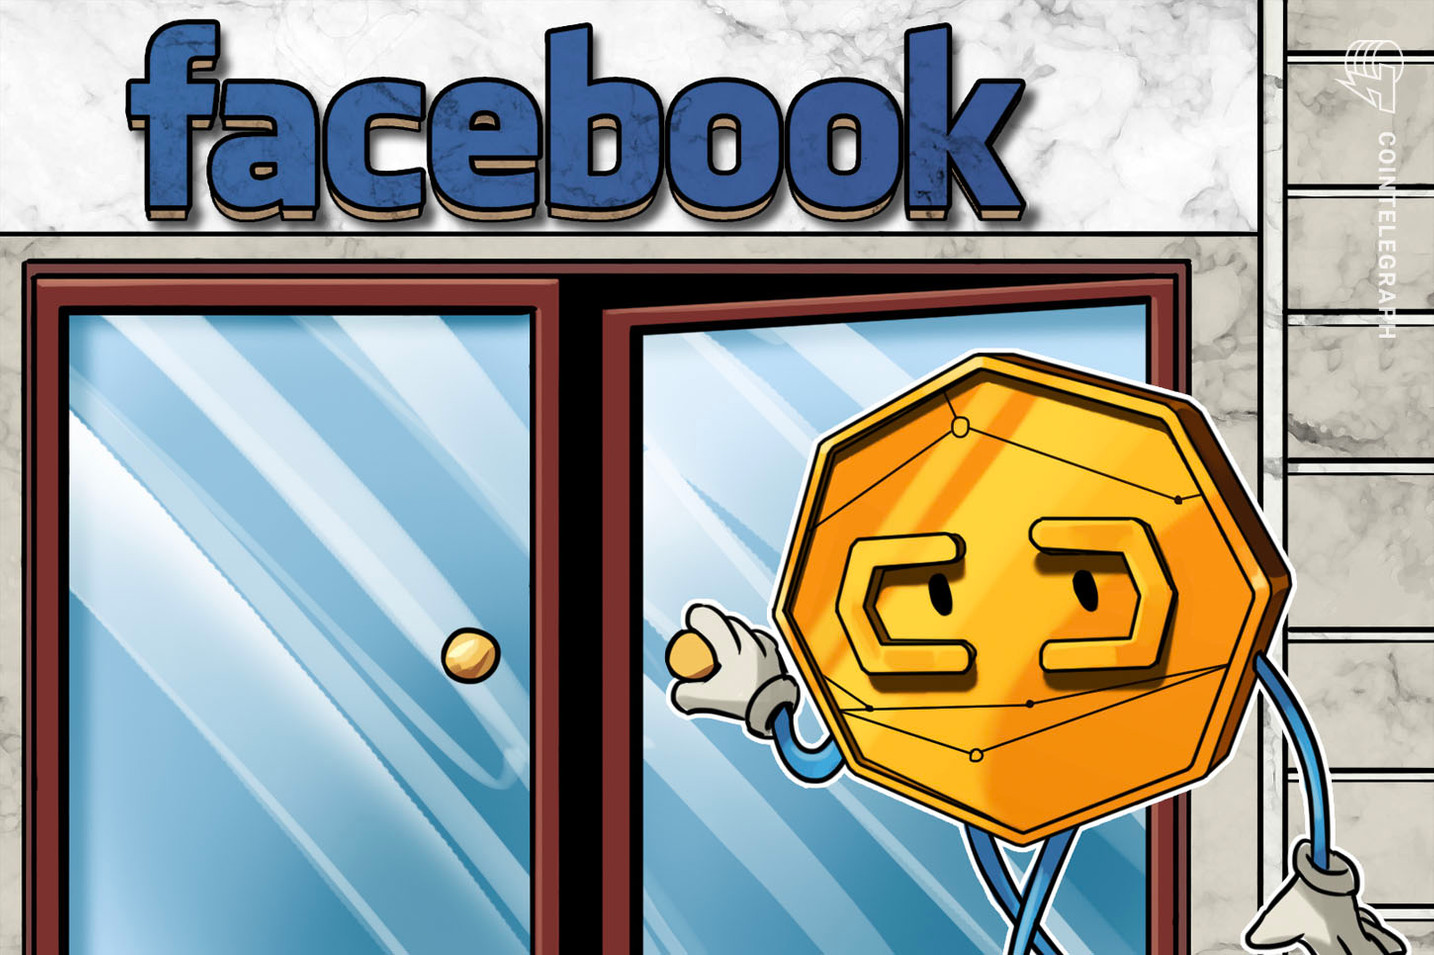 Source: South American Online Marketplace Working With Facebook on Crypto Project